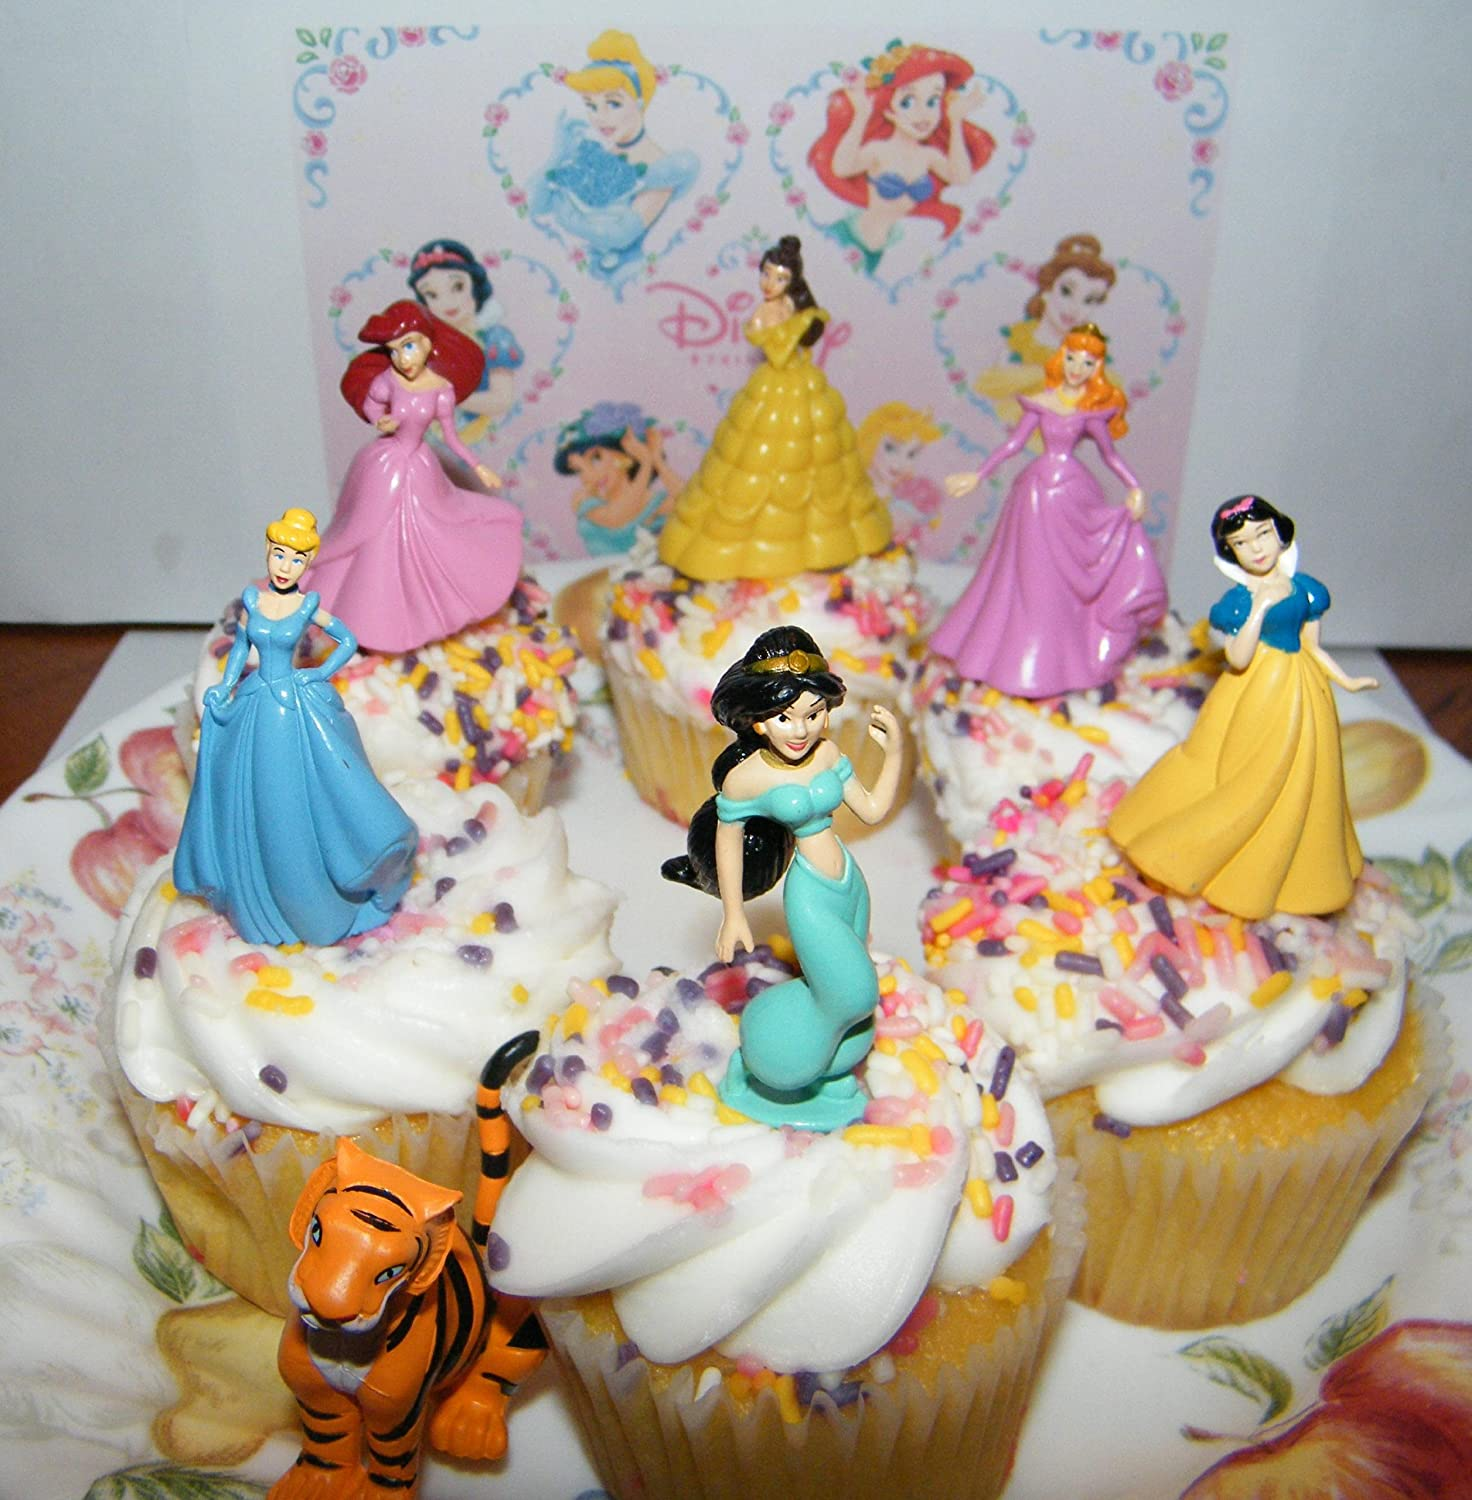 Amazoncom Disney Princess Set of 7 Cake Toppers Cupcake Toppers